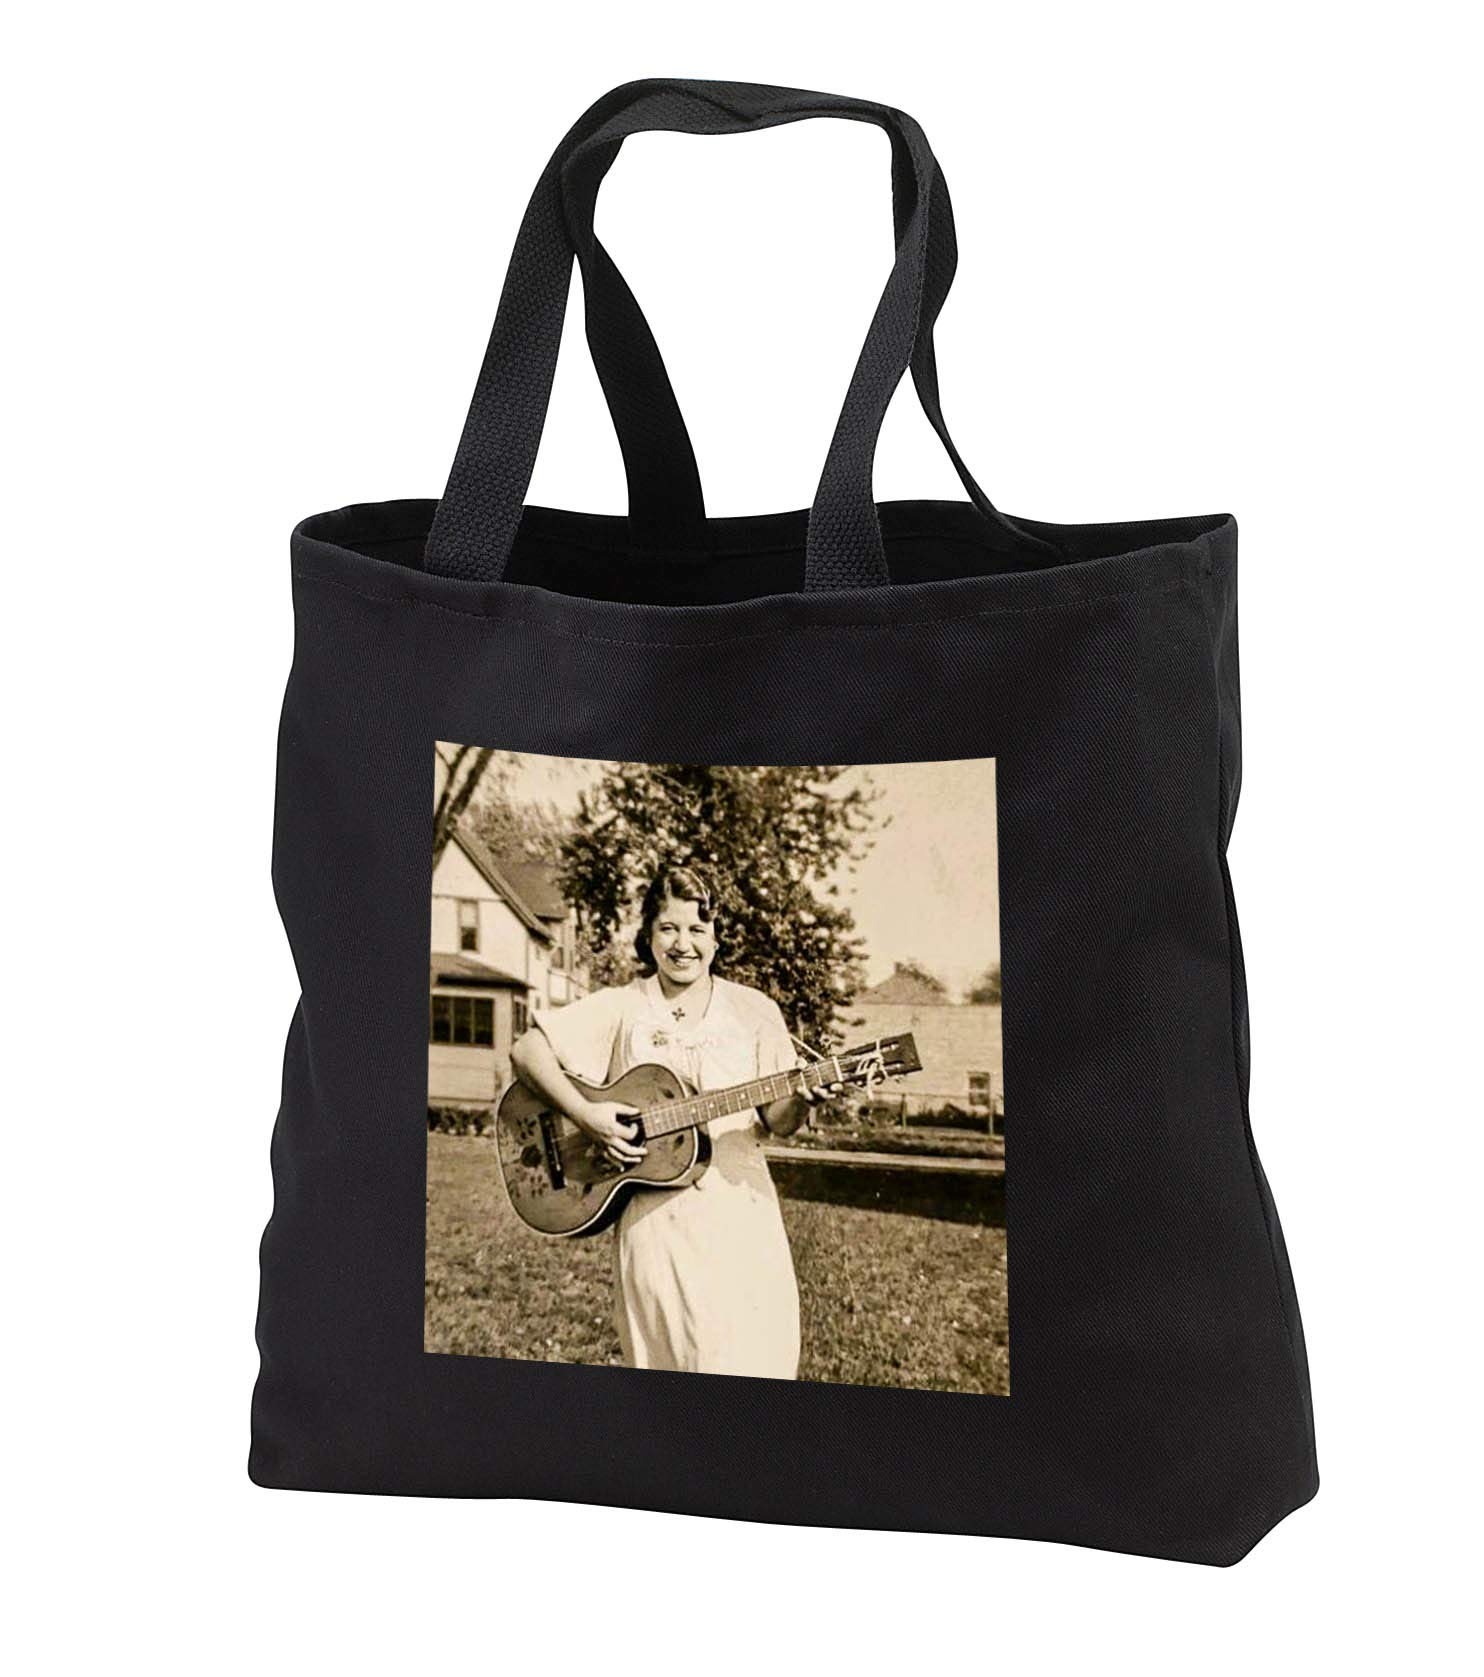 Scenes from the Past - Vintage Photography - Early American Country Folk Singer with Guitar - Tote Bags - Black Tote Bag JUMBO 20w x 15h x 5d (tb_301328_3) by 3dRose